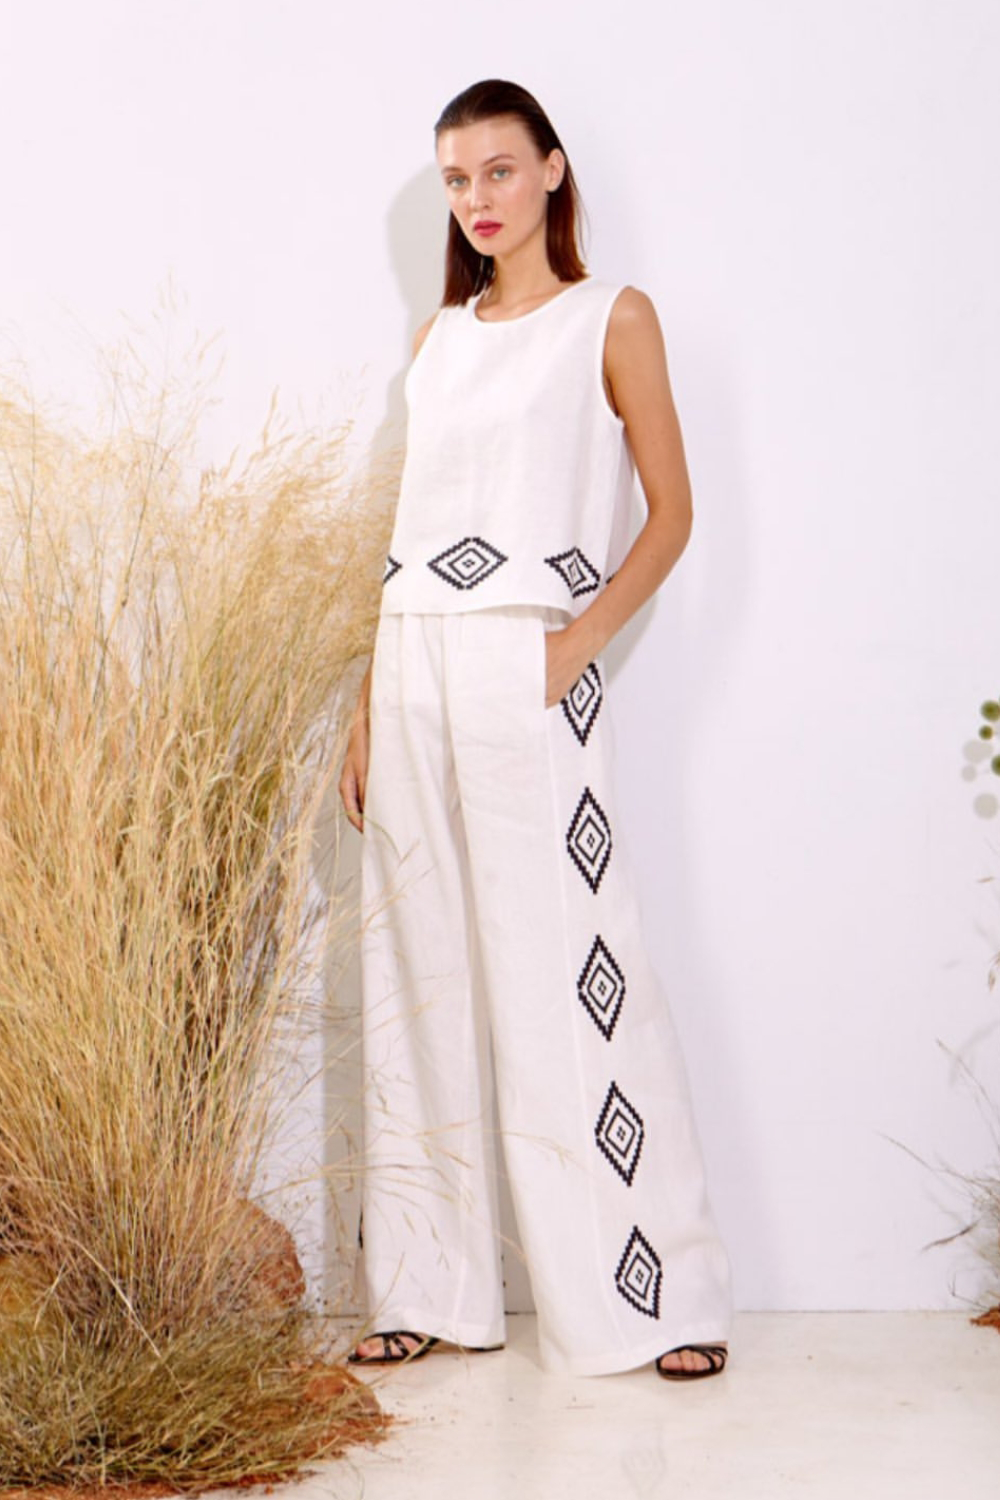 Moutaki White Linen Top with Black Geometric Border